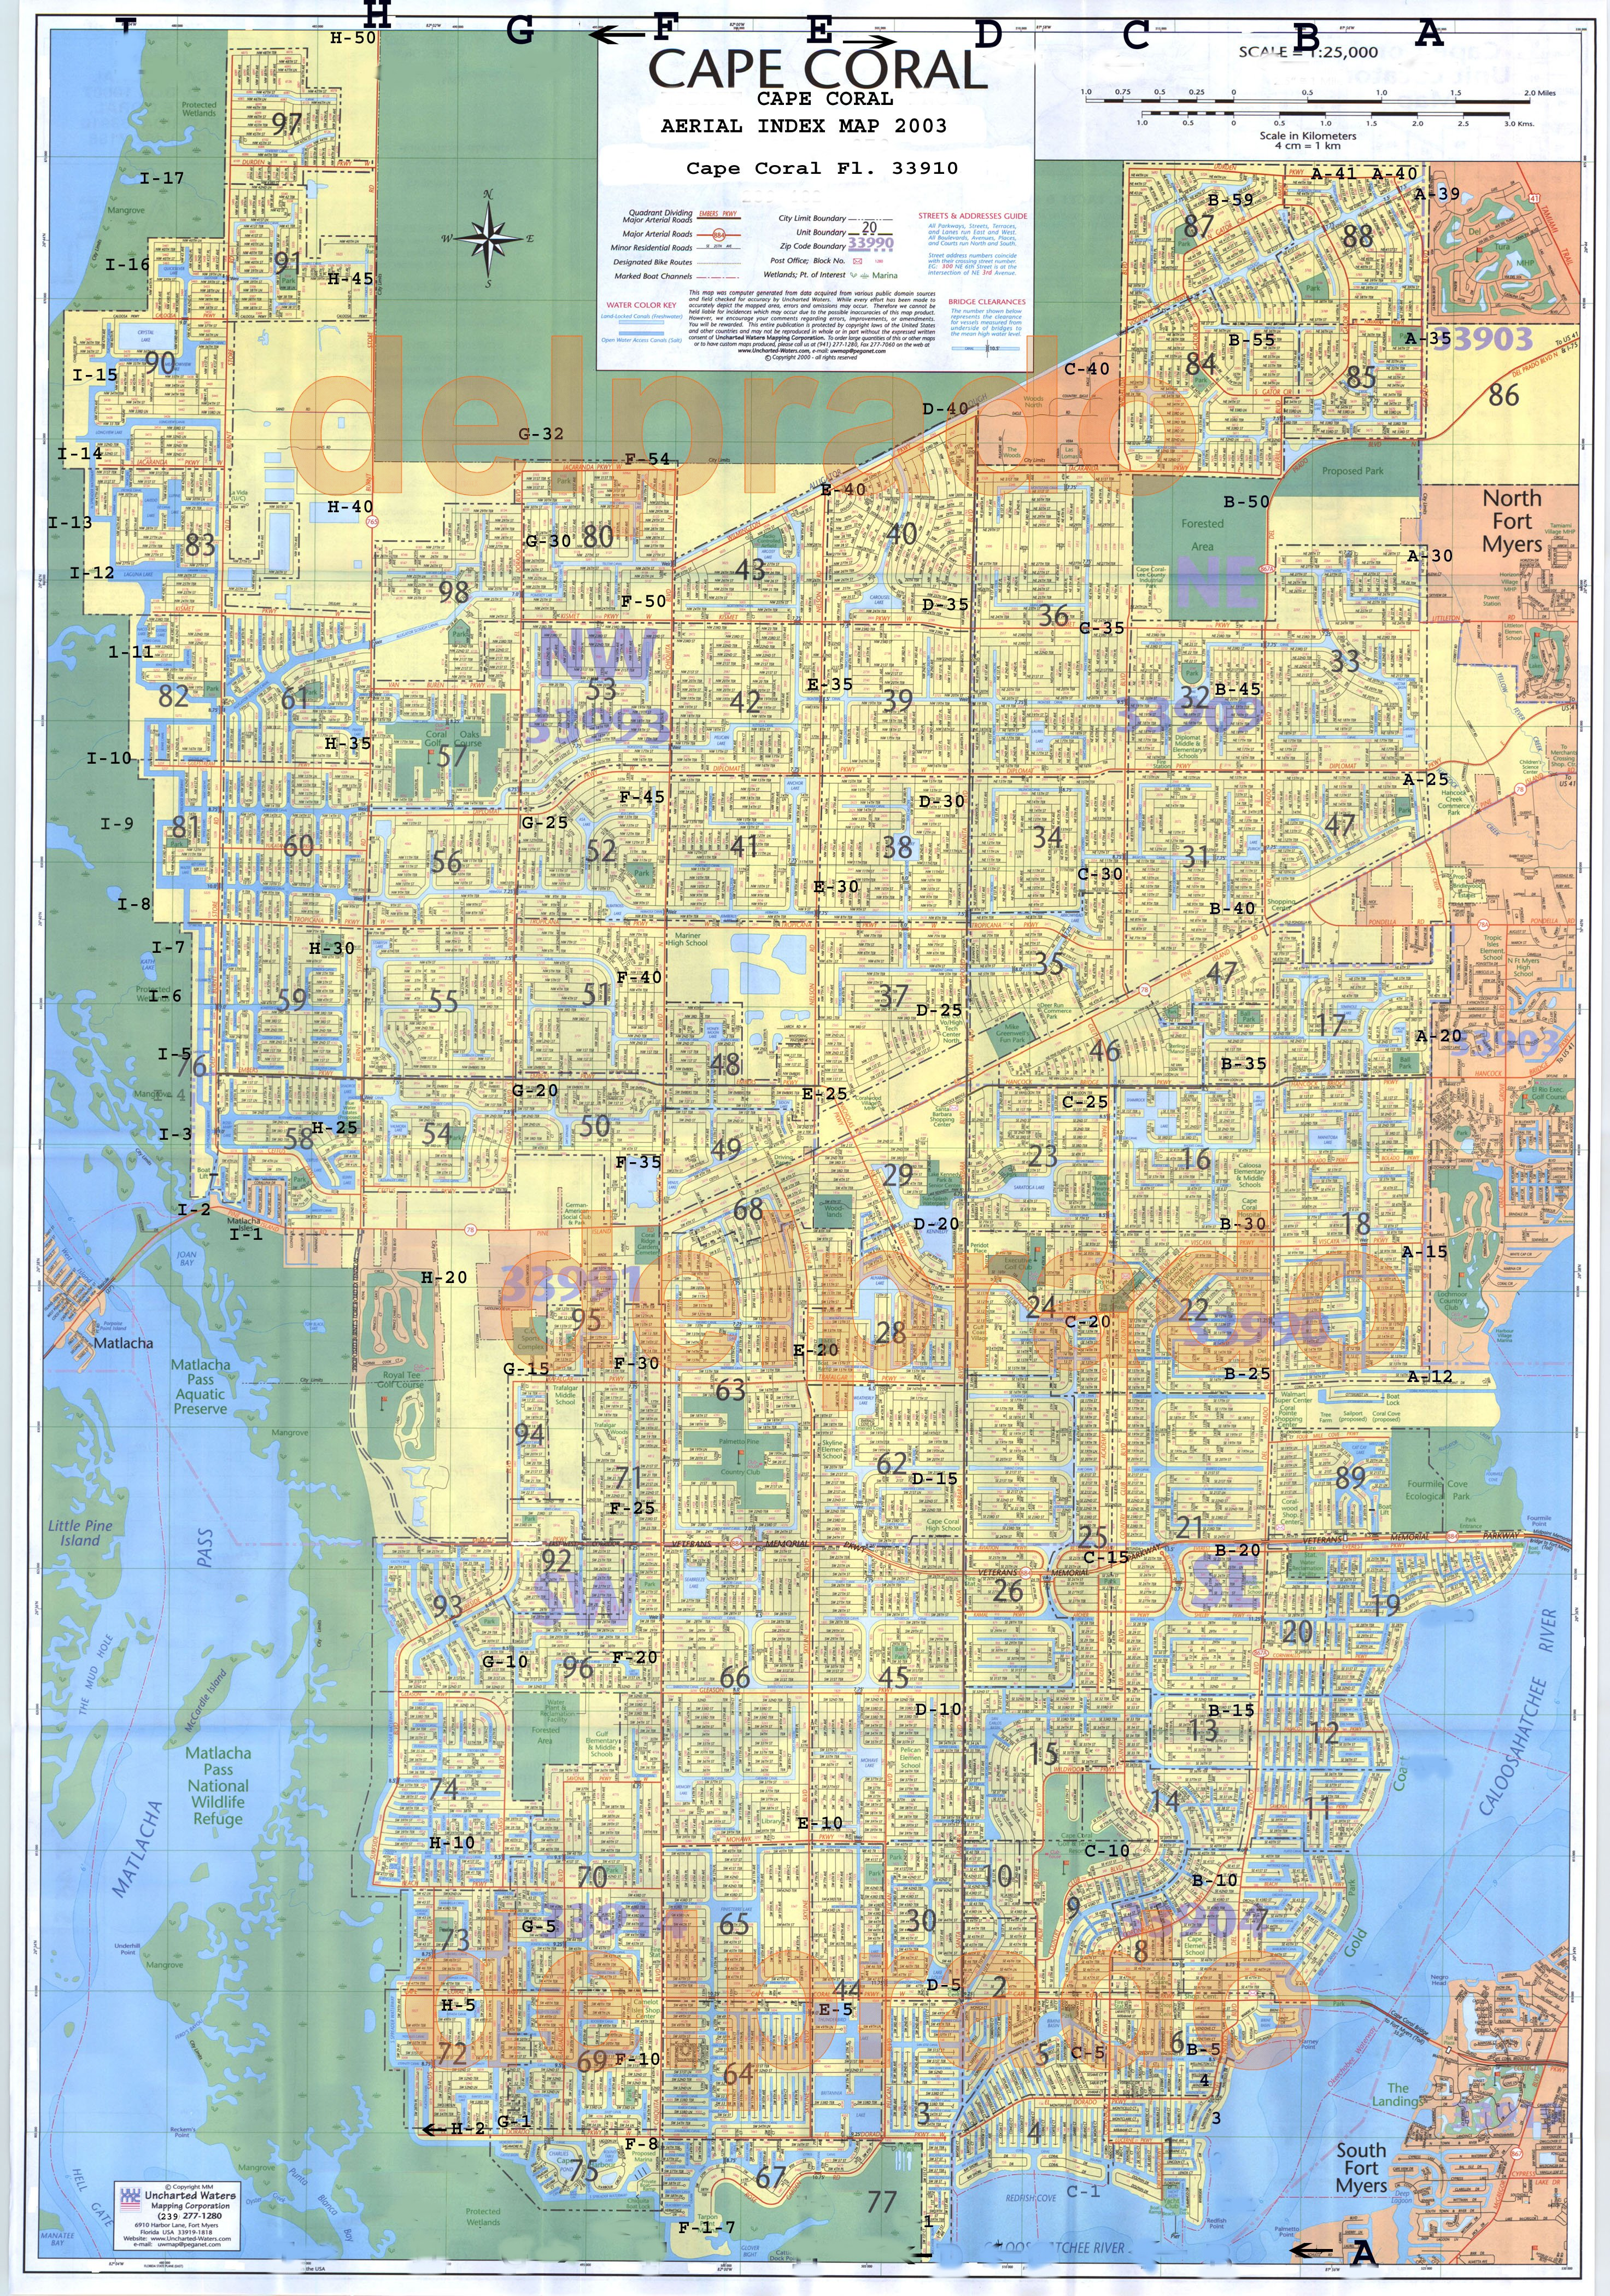 Cape Coral Map My Blog - Florida map cape coral